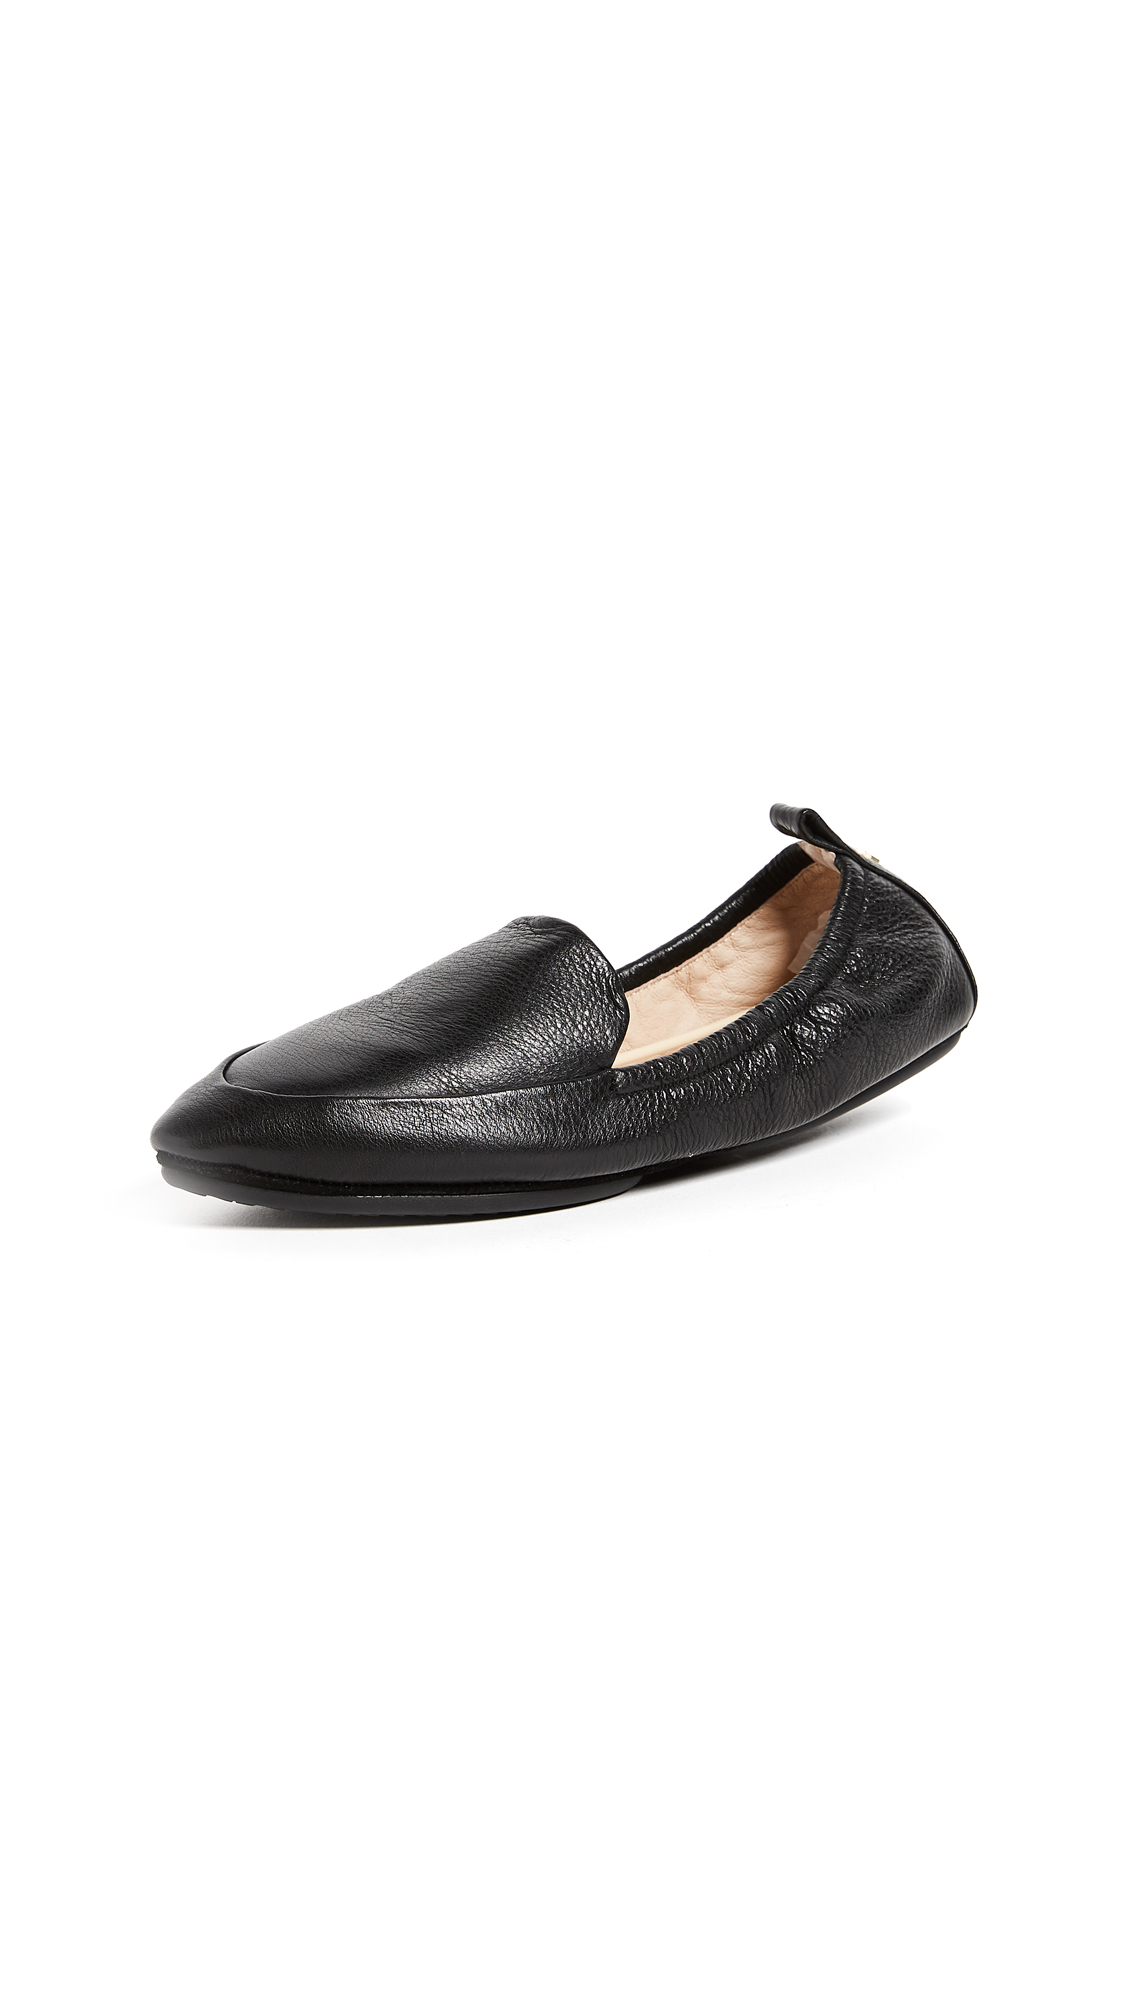 Yosi Samra Skyler Convertible Loafers - Black